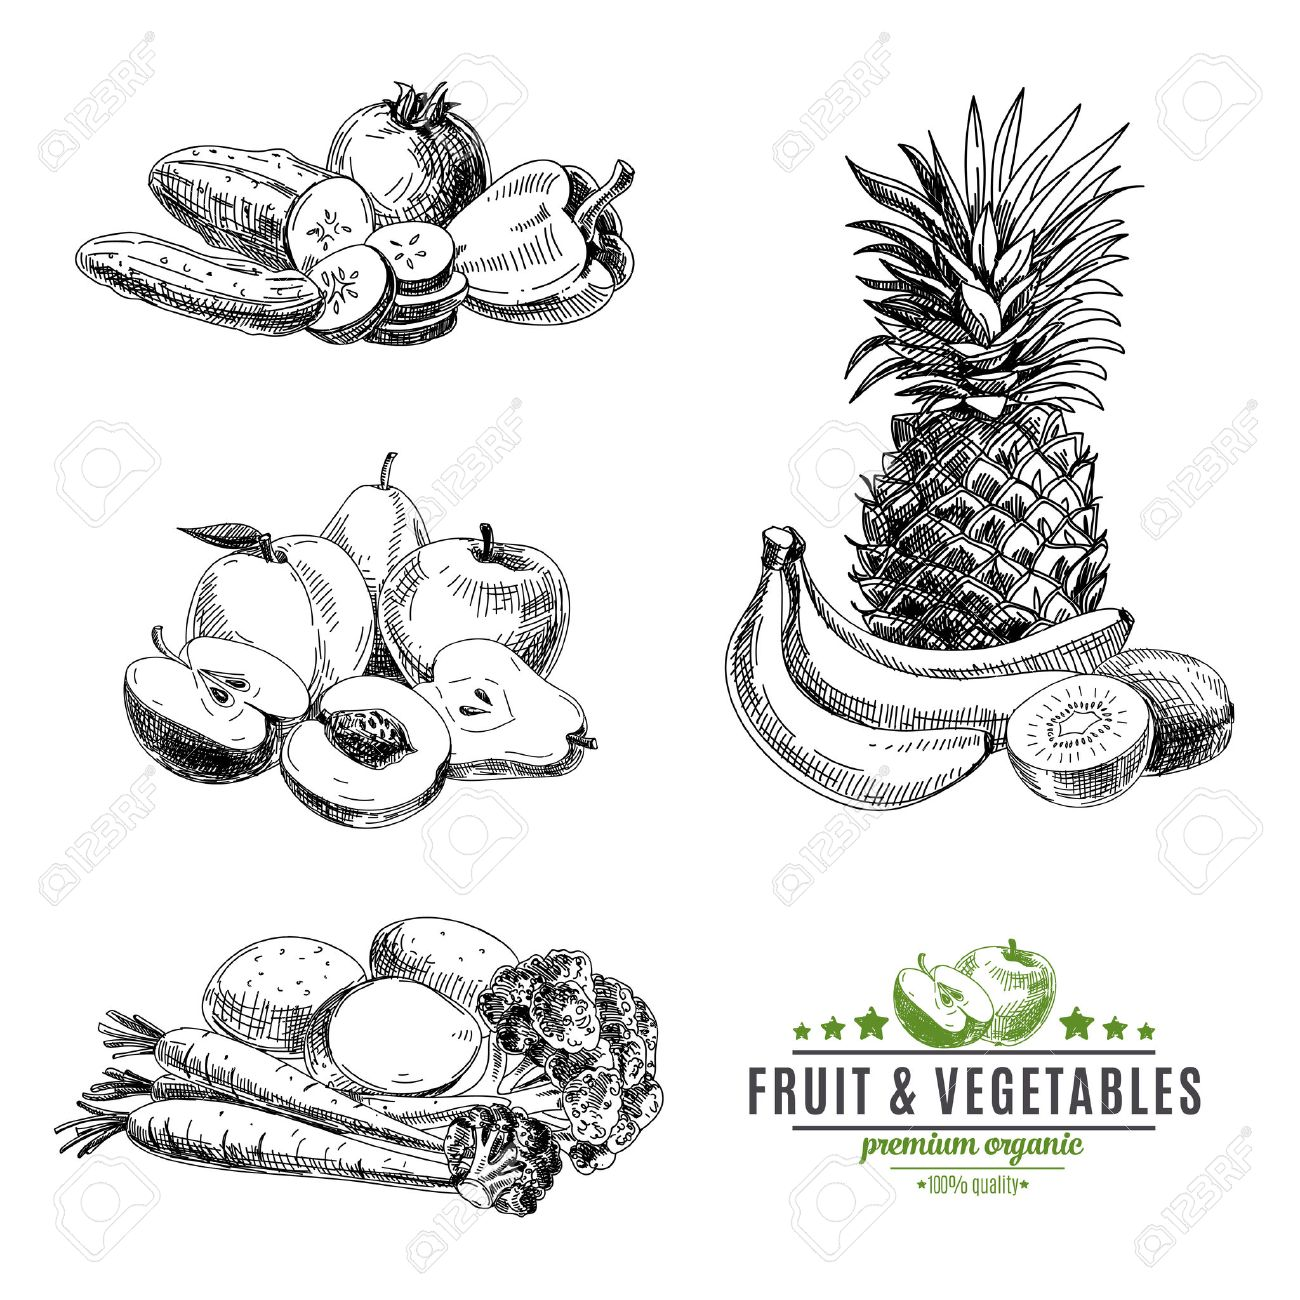 Vector set of fruit and vegetables. Healthy food. Vector illustration in sketch style. Hand drawn design elements. - 43333324